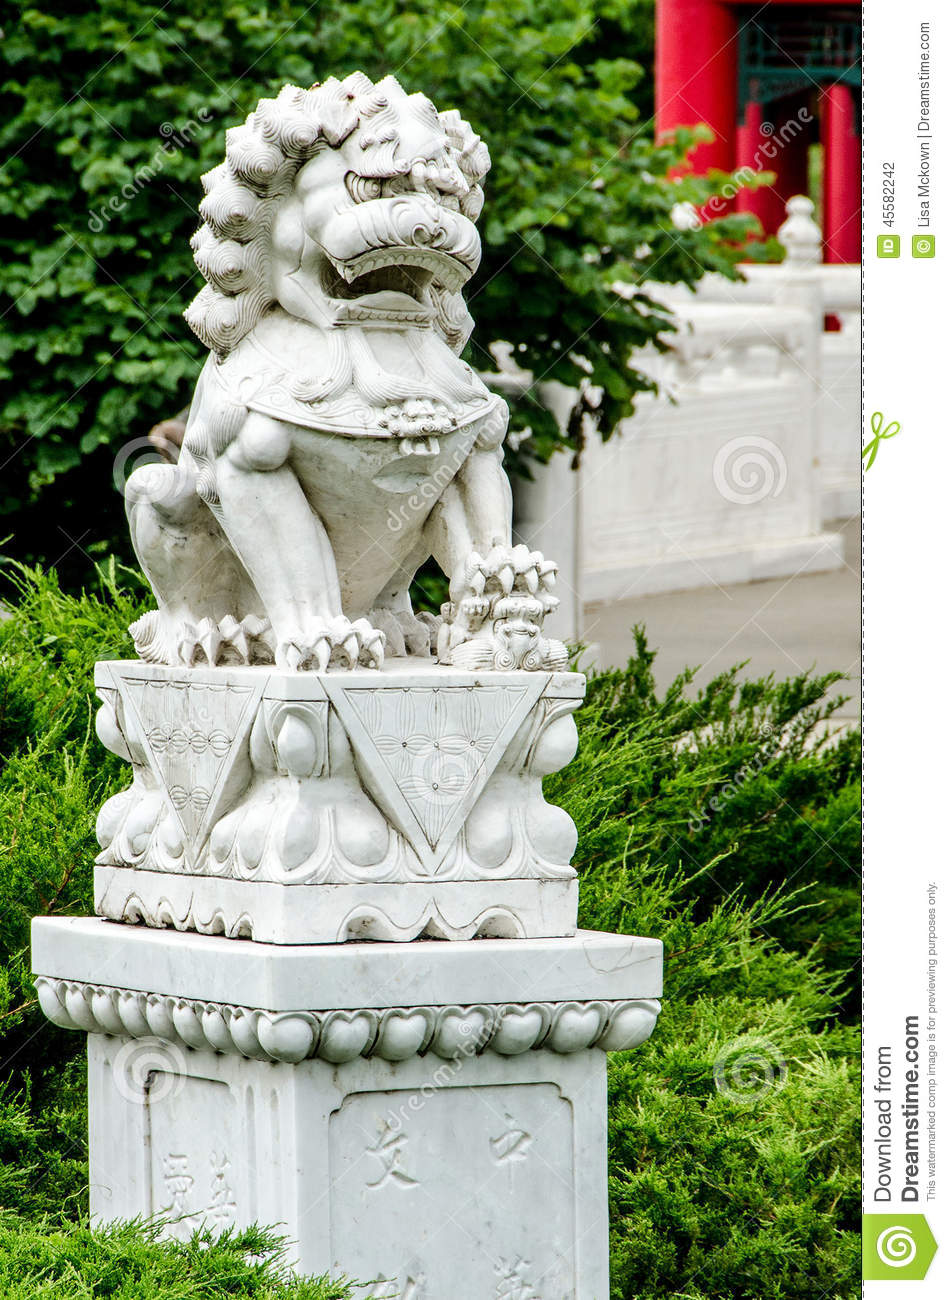 japanese pagoda zen garden stock photo image of america 45582242. Black Bedroom Furniture Sets. Home Design Ideas